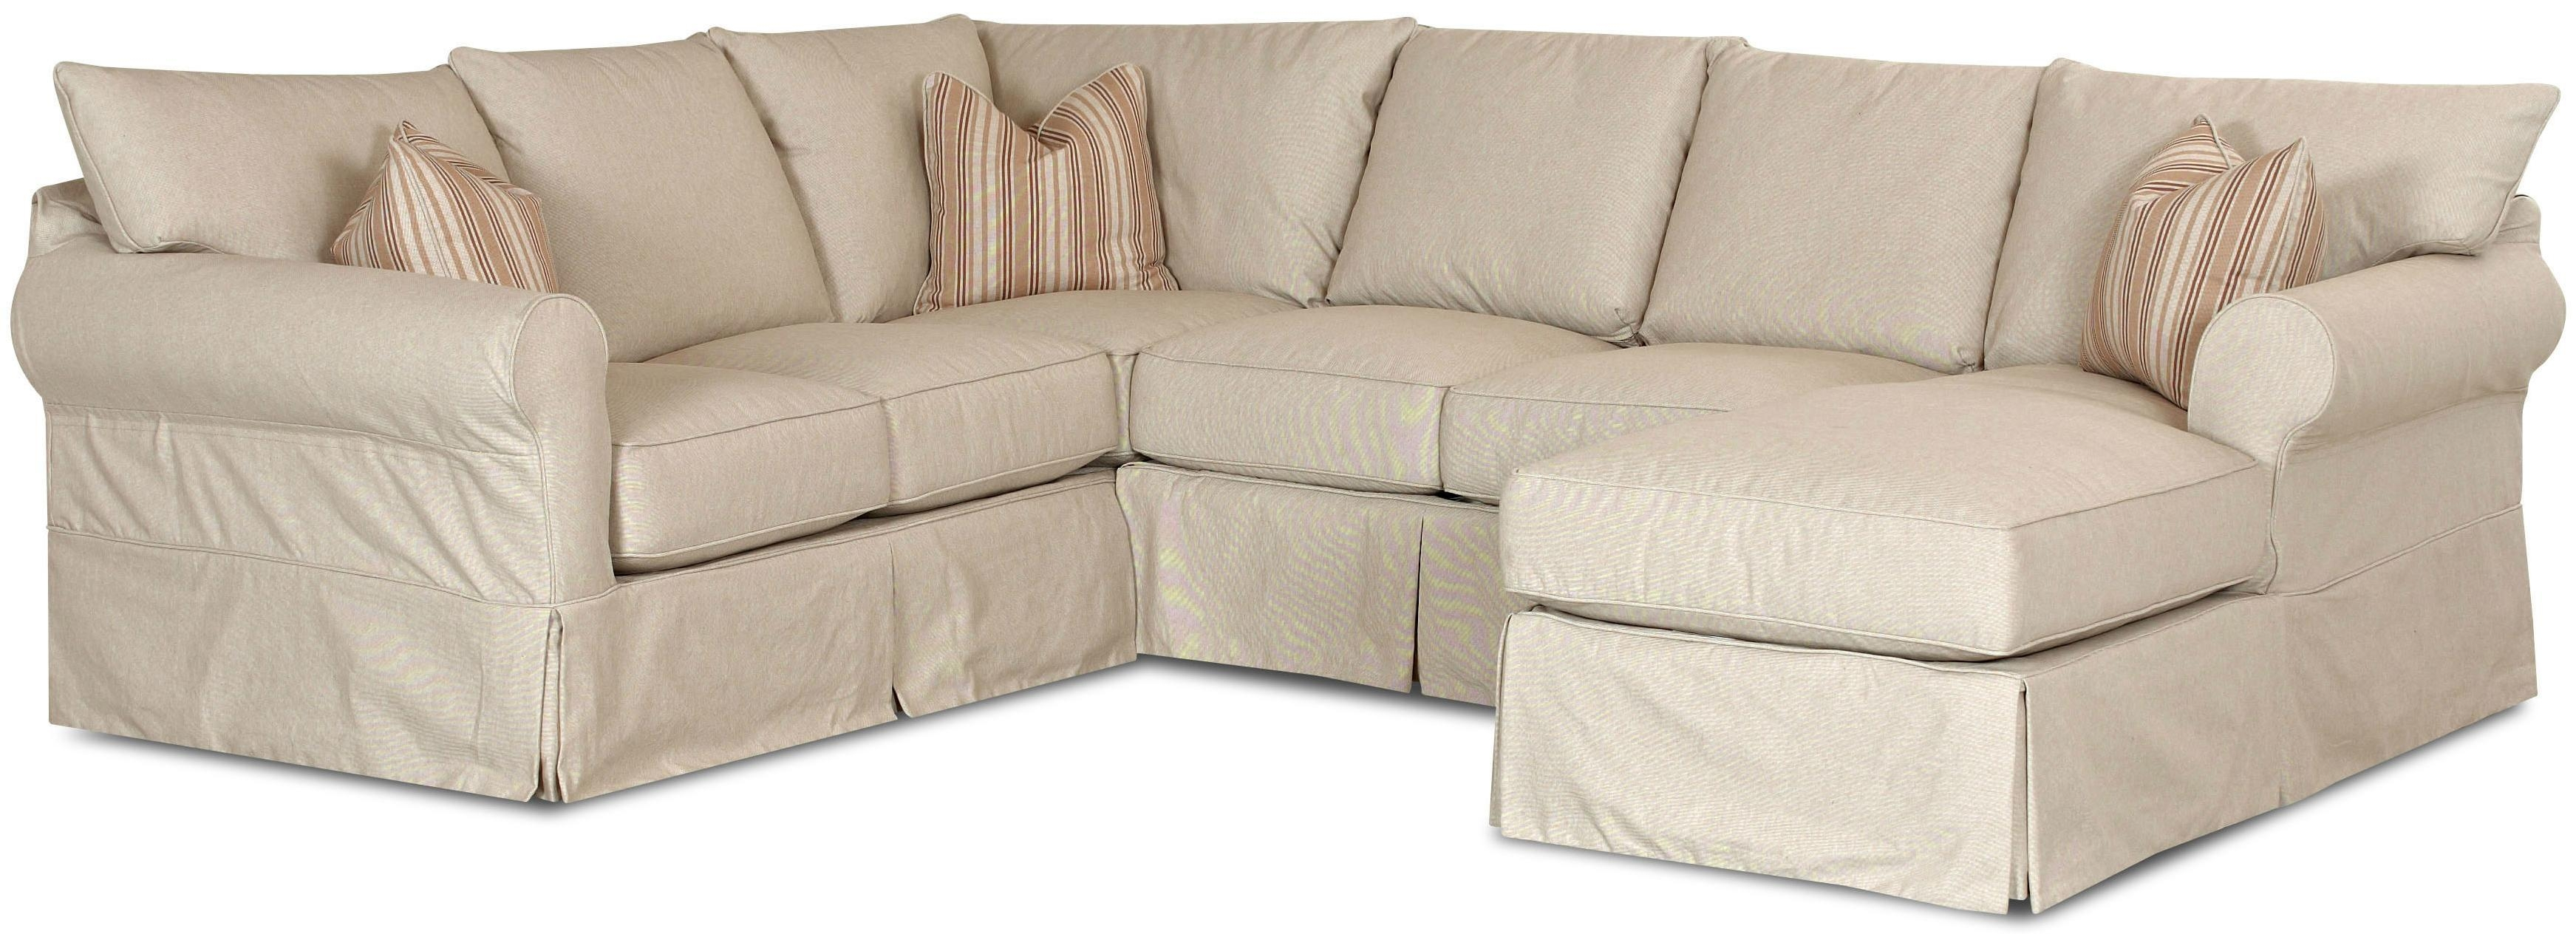 Furniture: Update Your Cozy Living Room With Cheap Sofa Covers With Regard To 3 Piece Sectional Sofa Slipcovers (View 3 of 20)